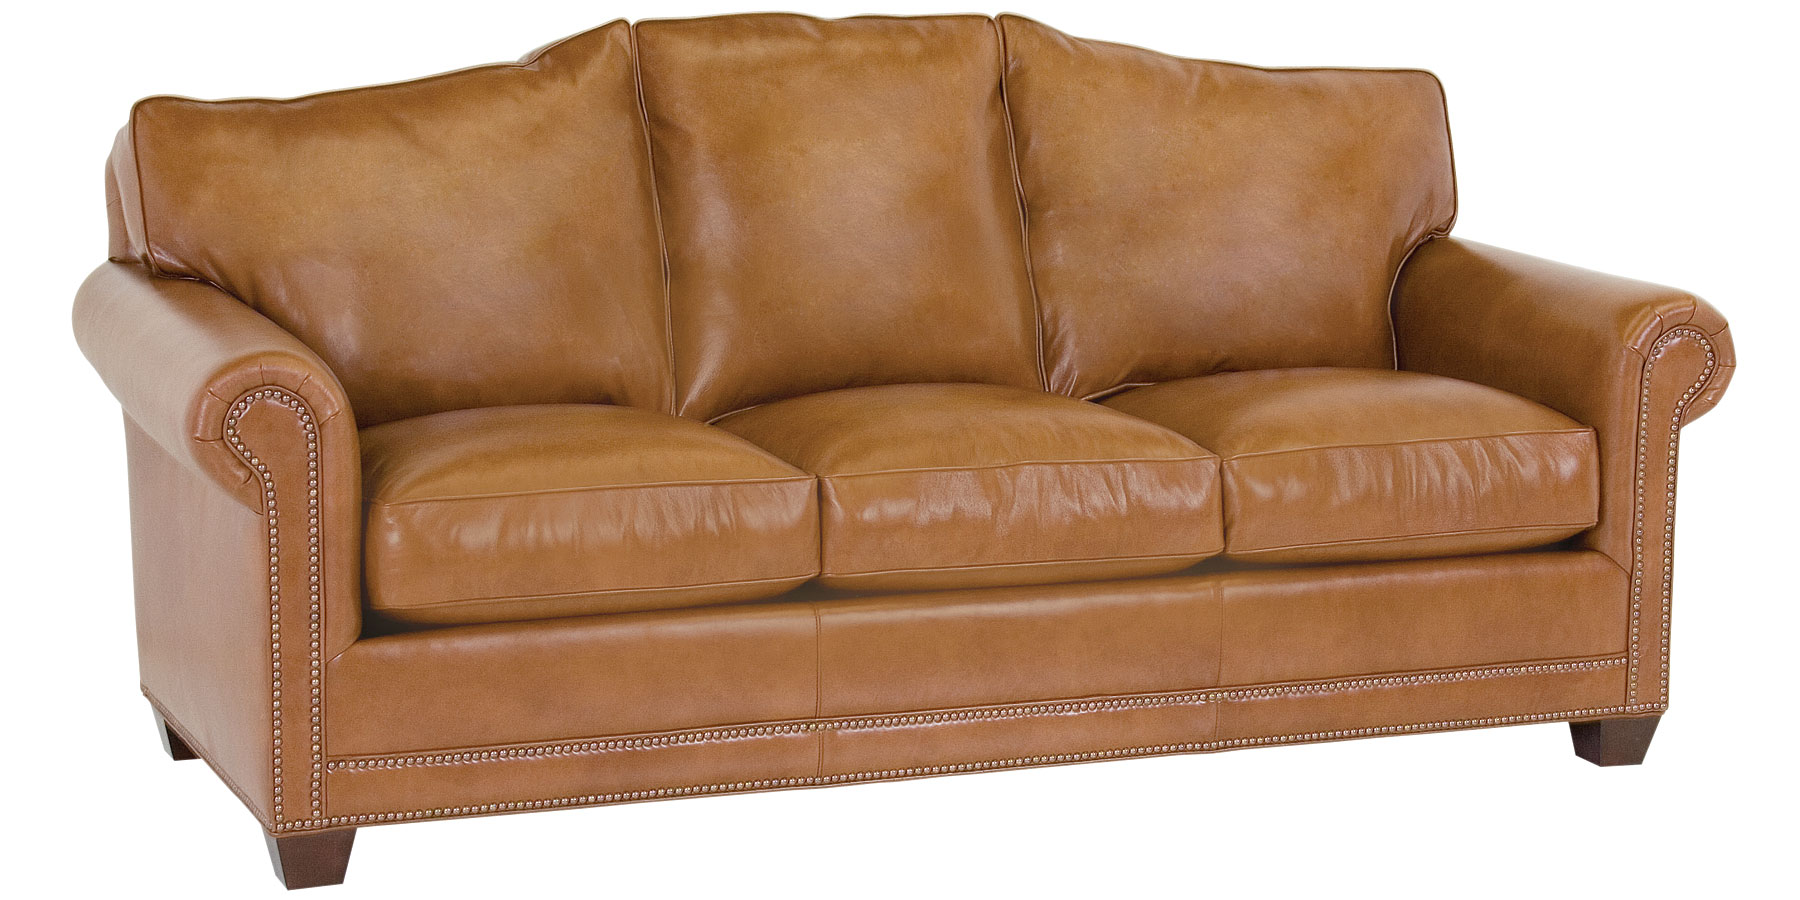 Leather Furniture | Club Furniture